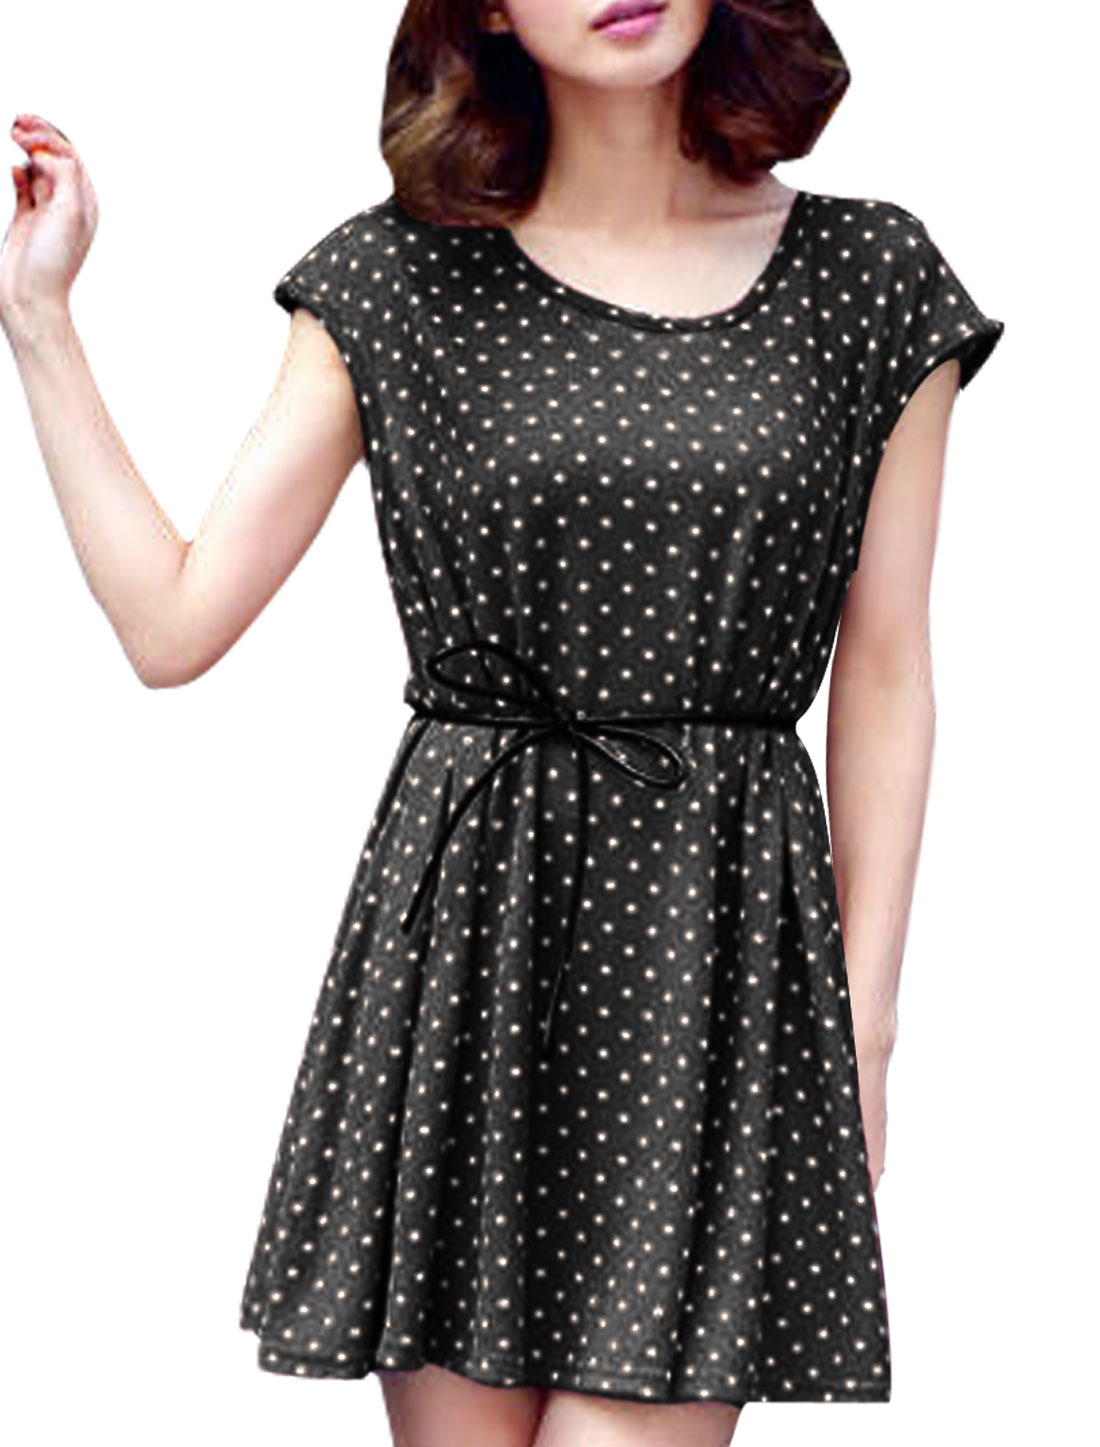 Women Round Neck Pullover Sleeveless Dots Belted Stretchy Casual Dress Black XS